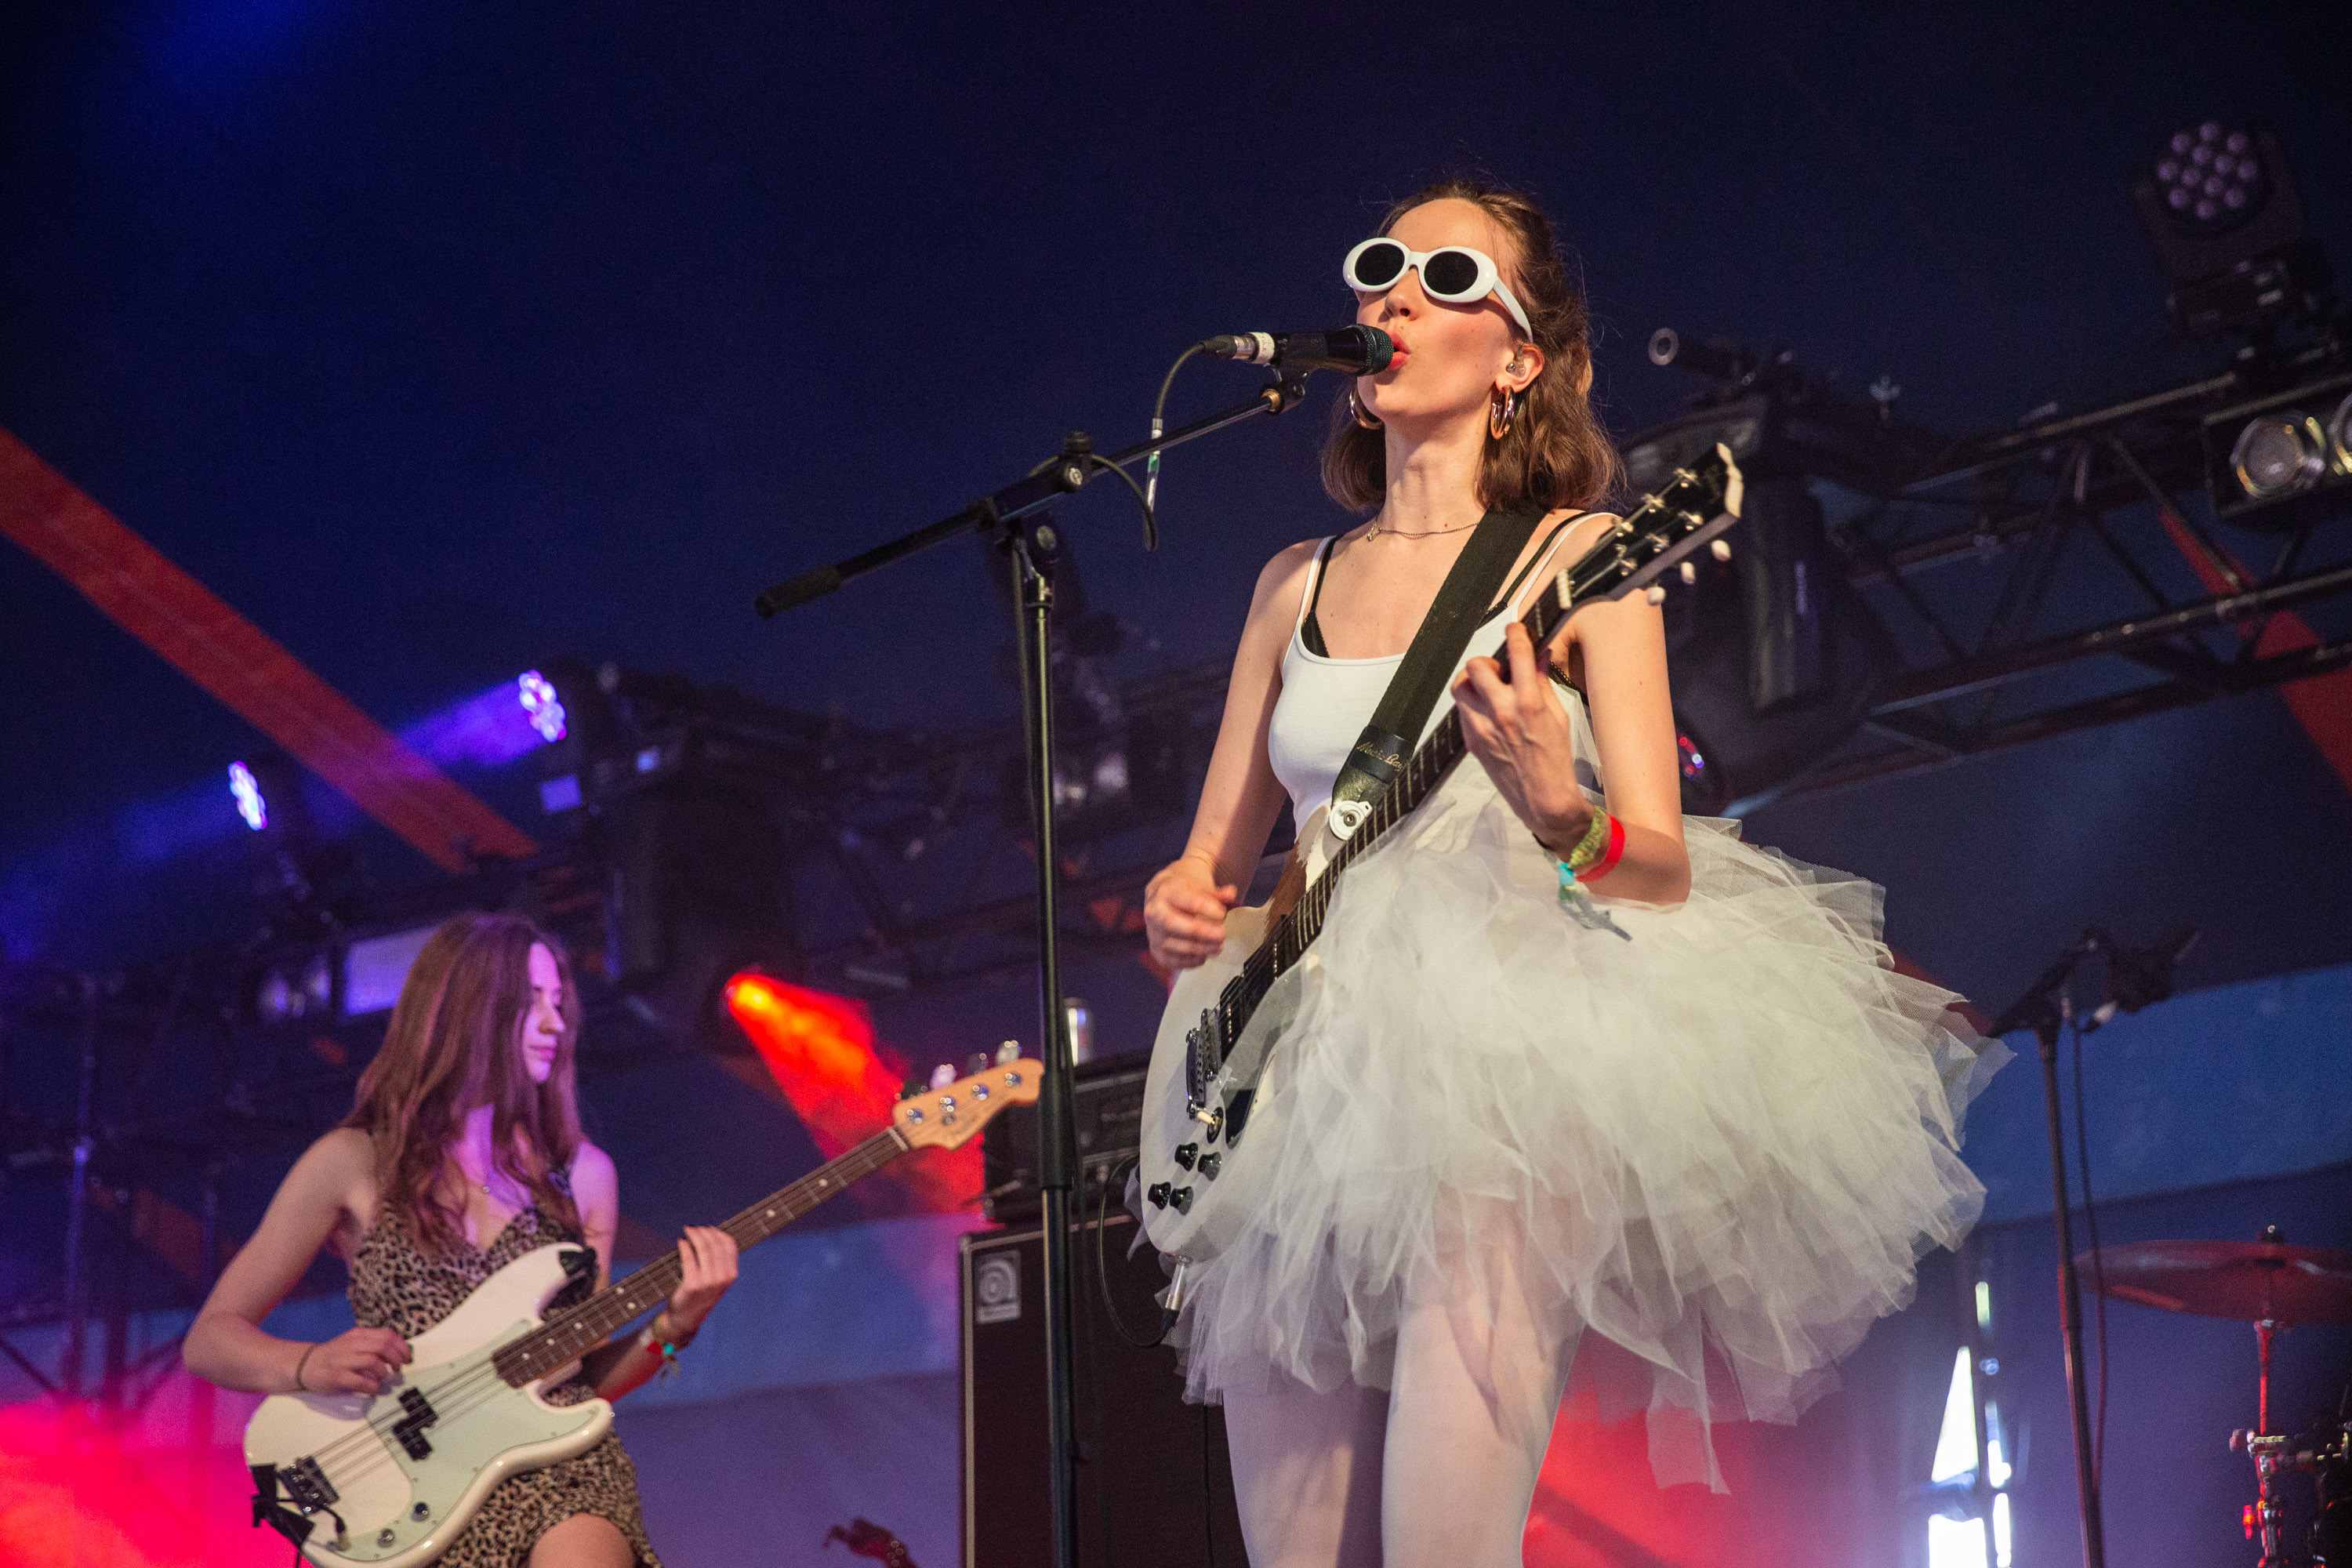 Surprises from The Big Moon and Pale Waves and hard-hitters from techno's finest christen the first day of Glastonbury 2019